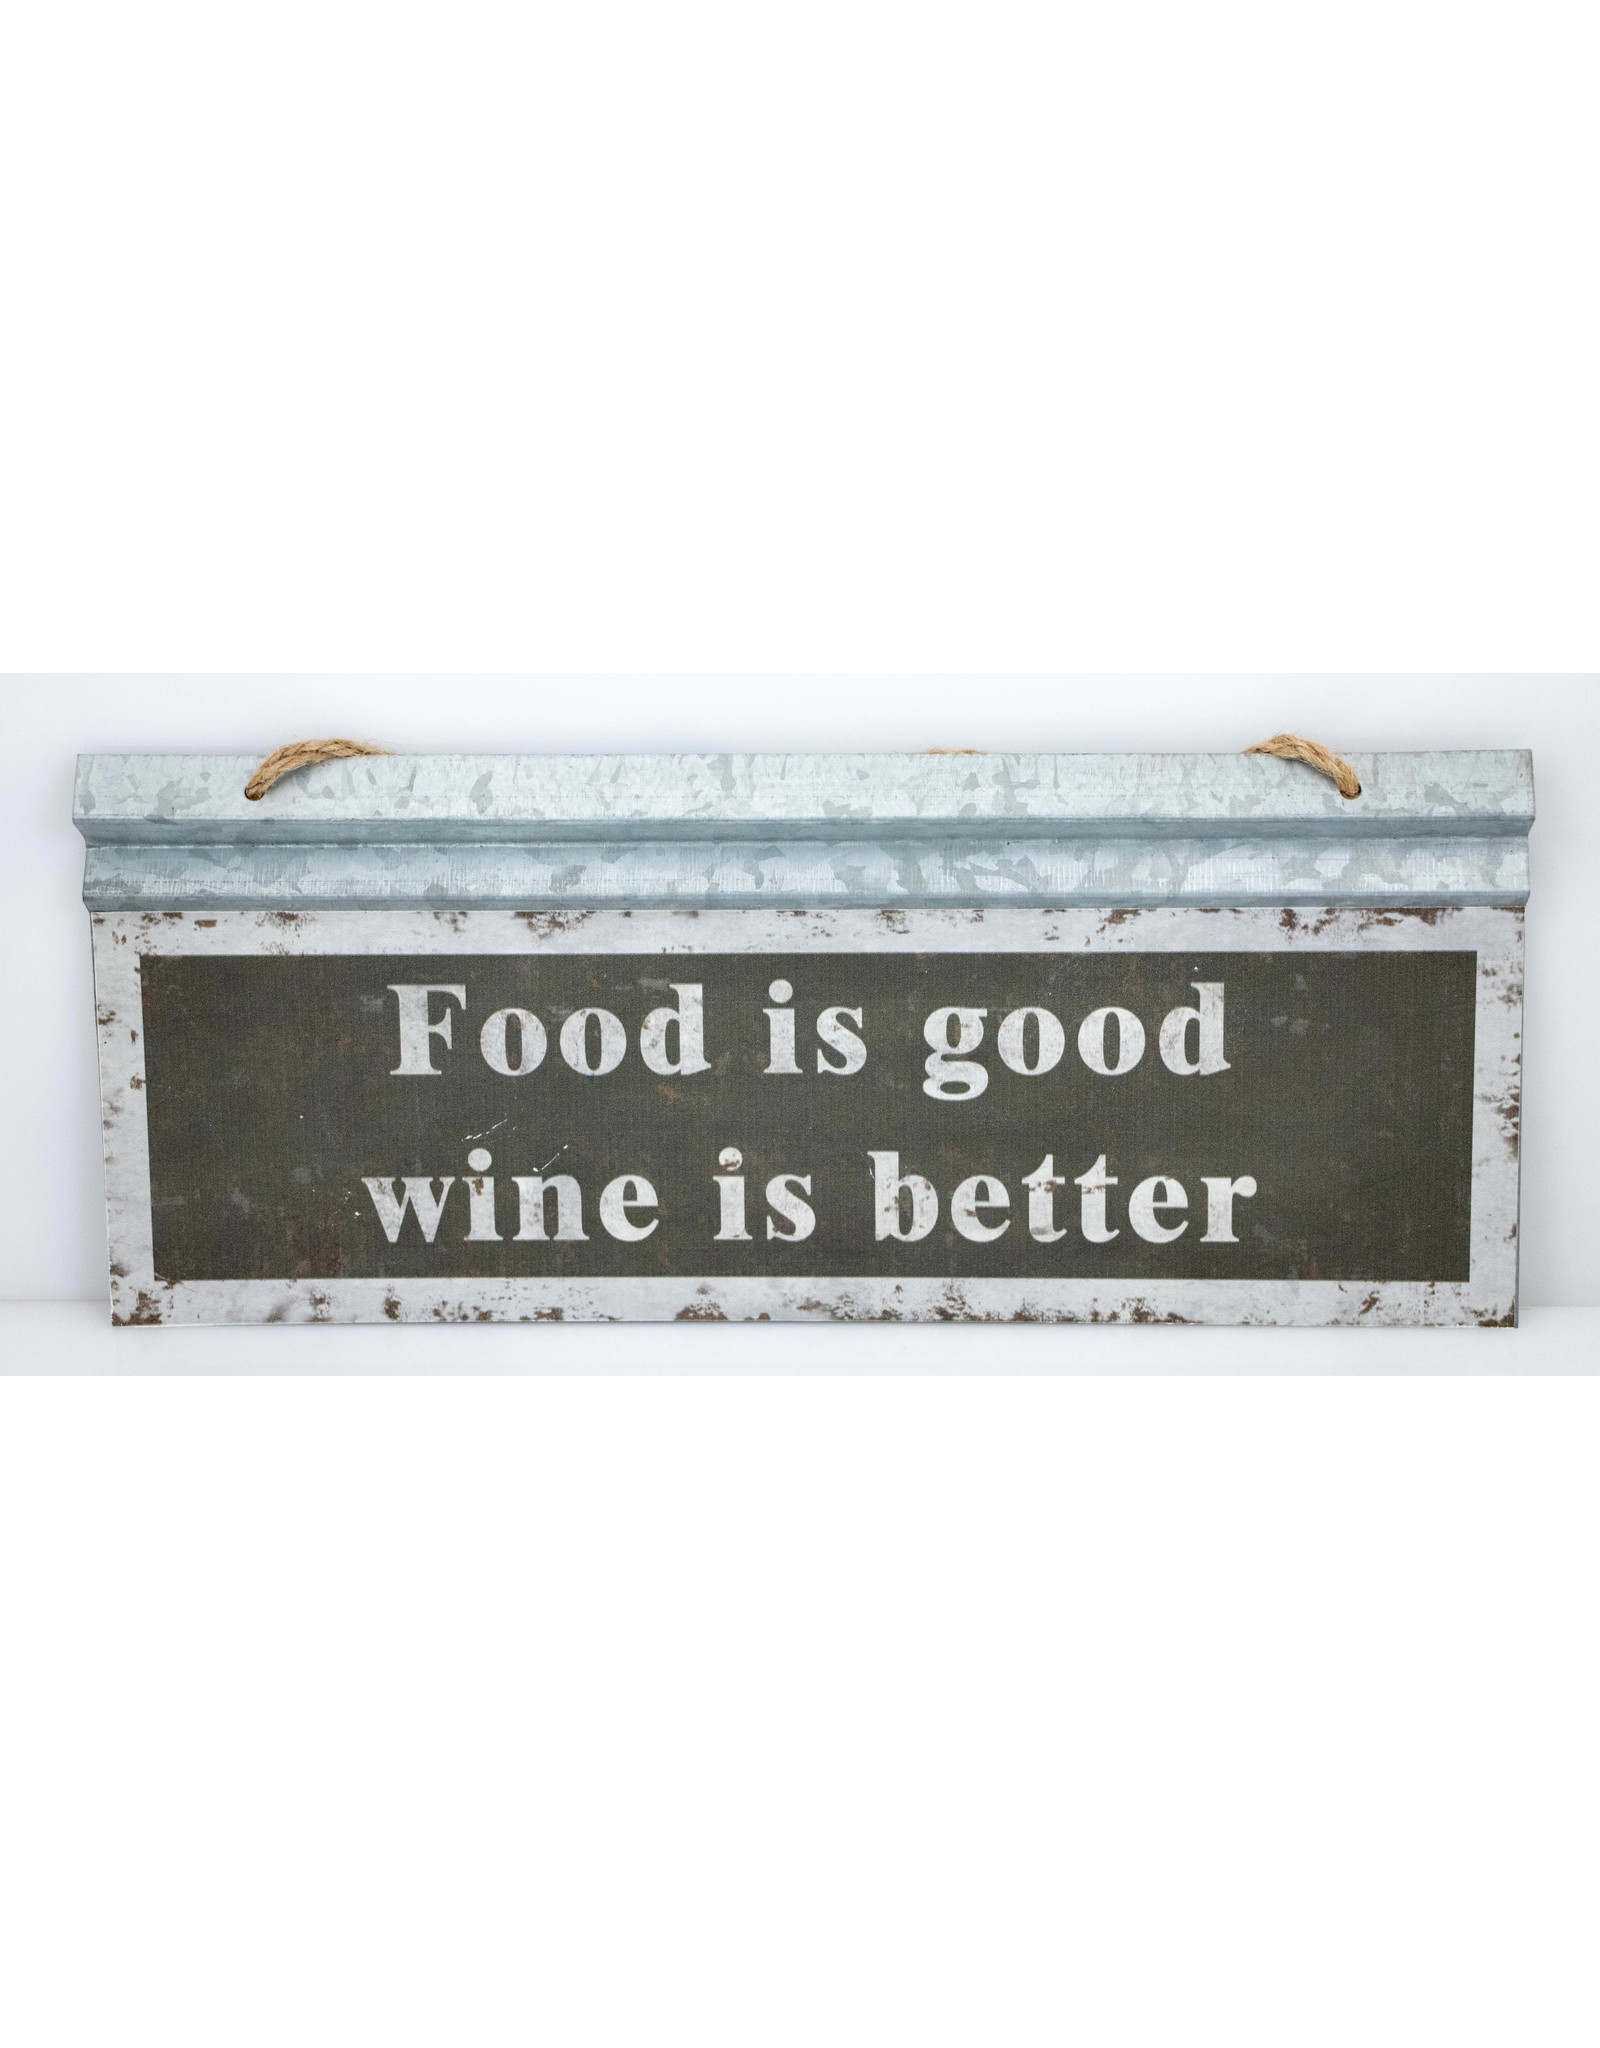 Food is good, wine is better